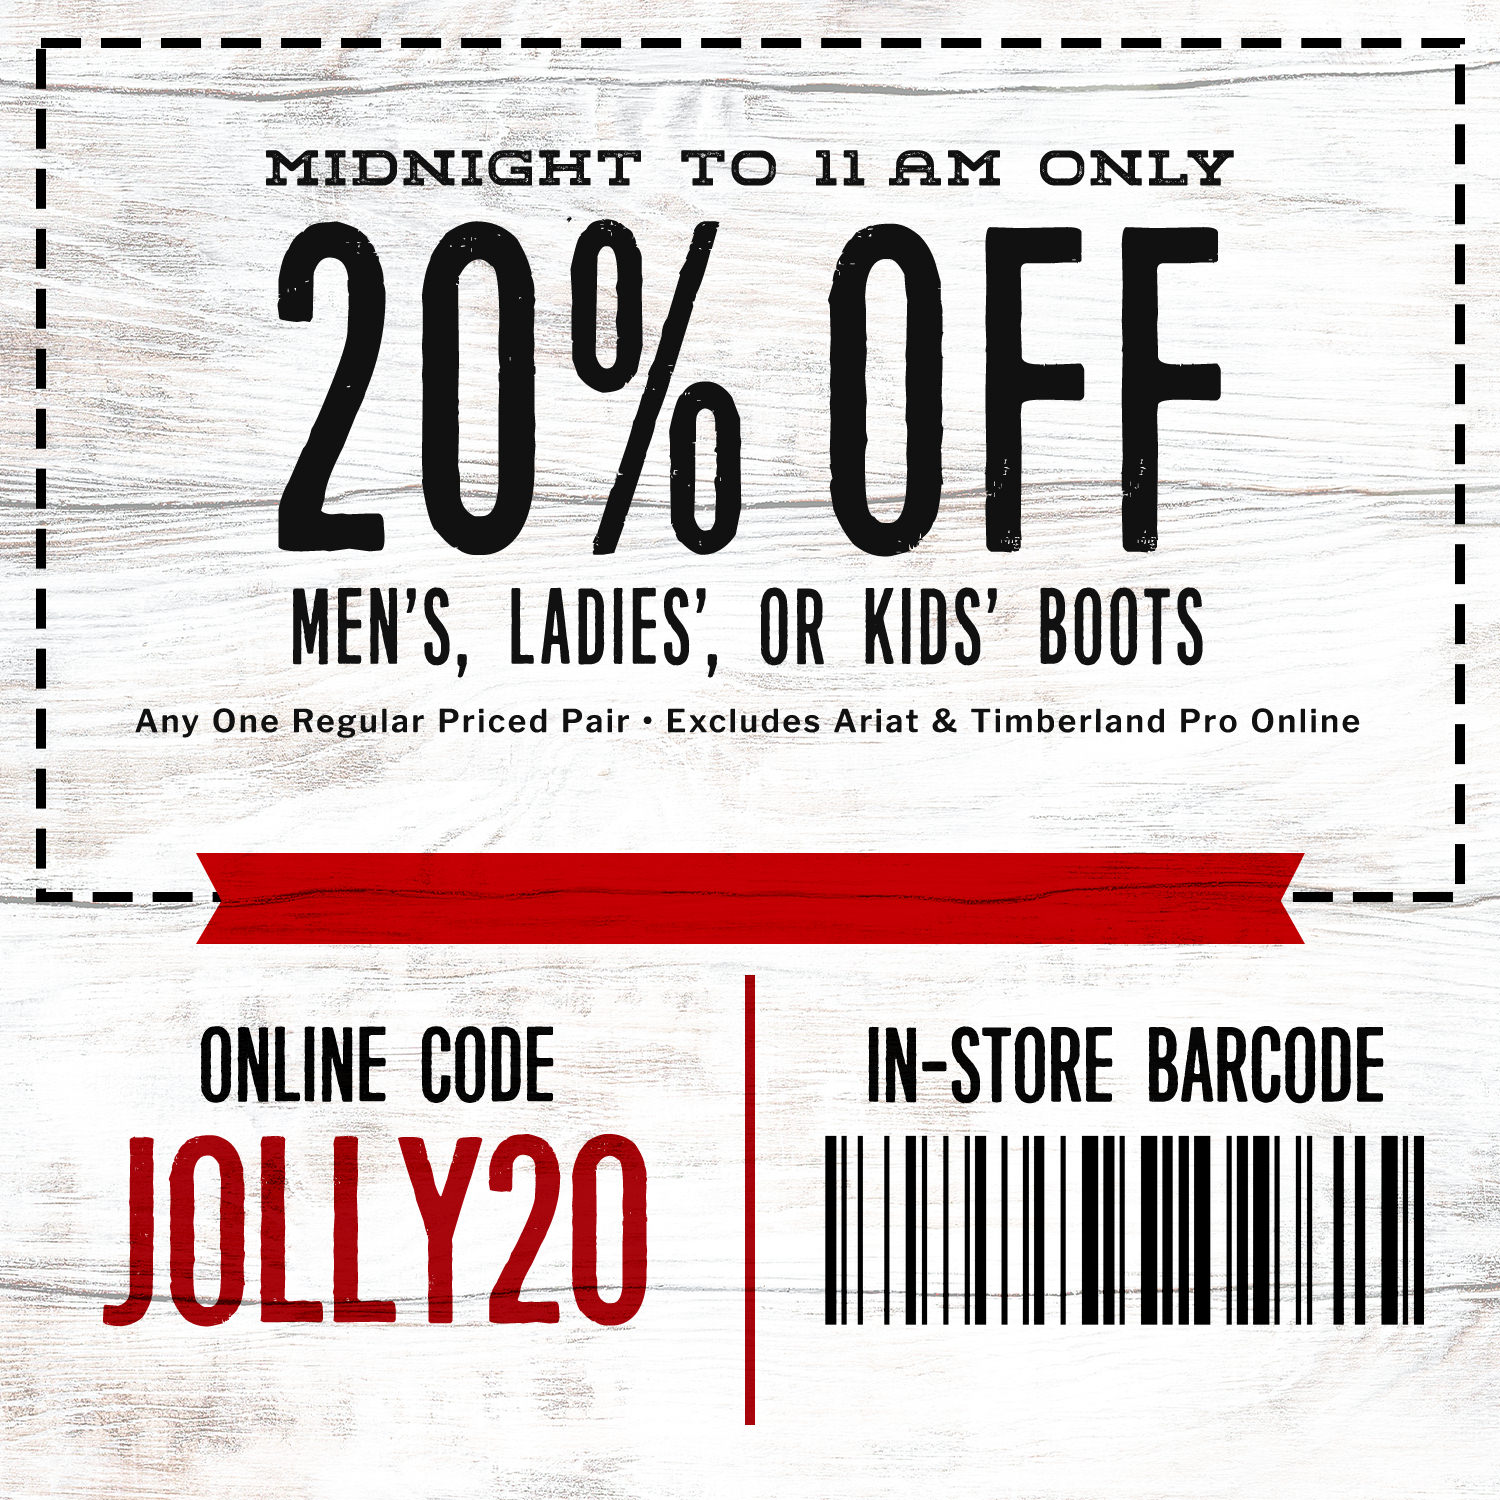 Boot Barn Promo Code For Christmas 2020 Black Friday Deals 2019   Free Shipping $50+ | Cavender's